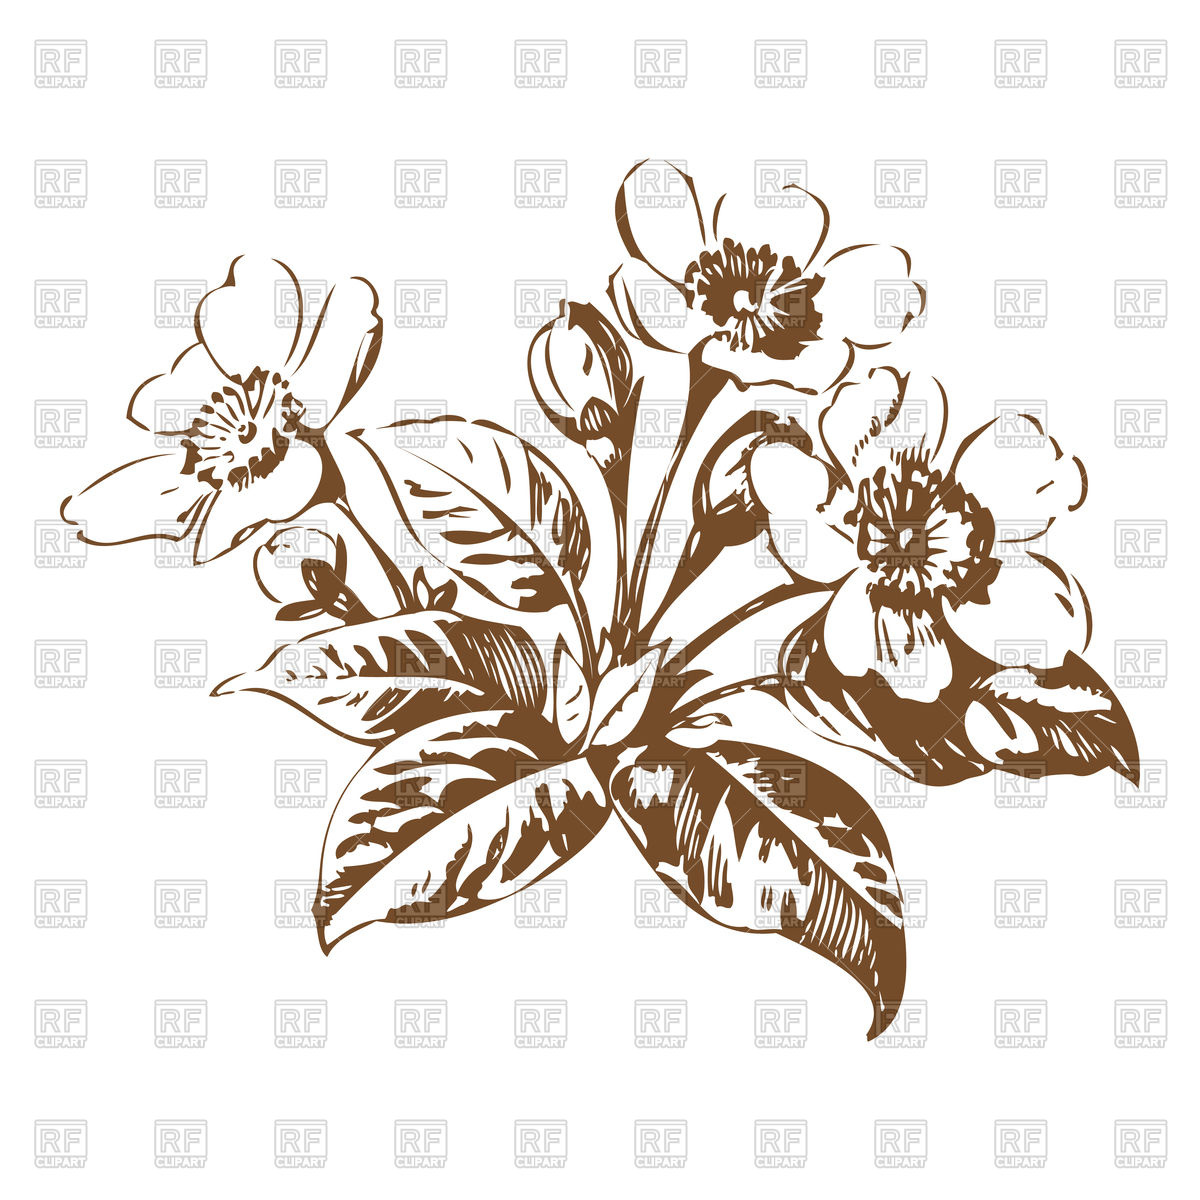 Cherry blossom flowers sketch Stock Vector Image.